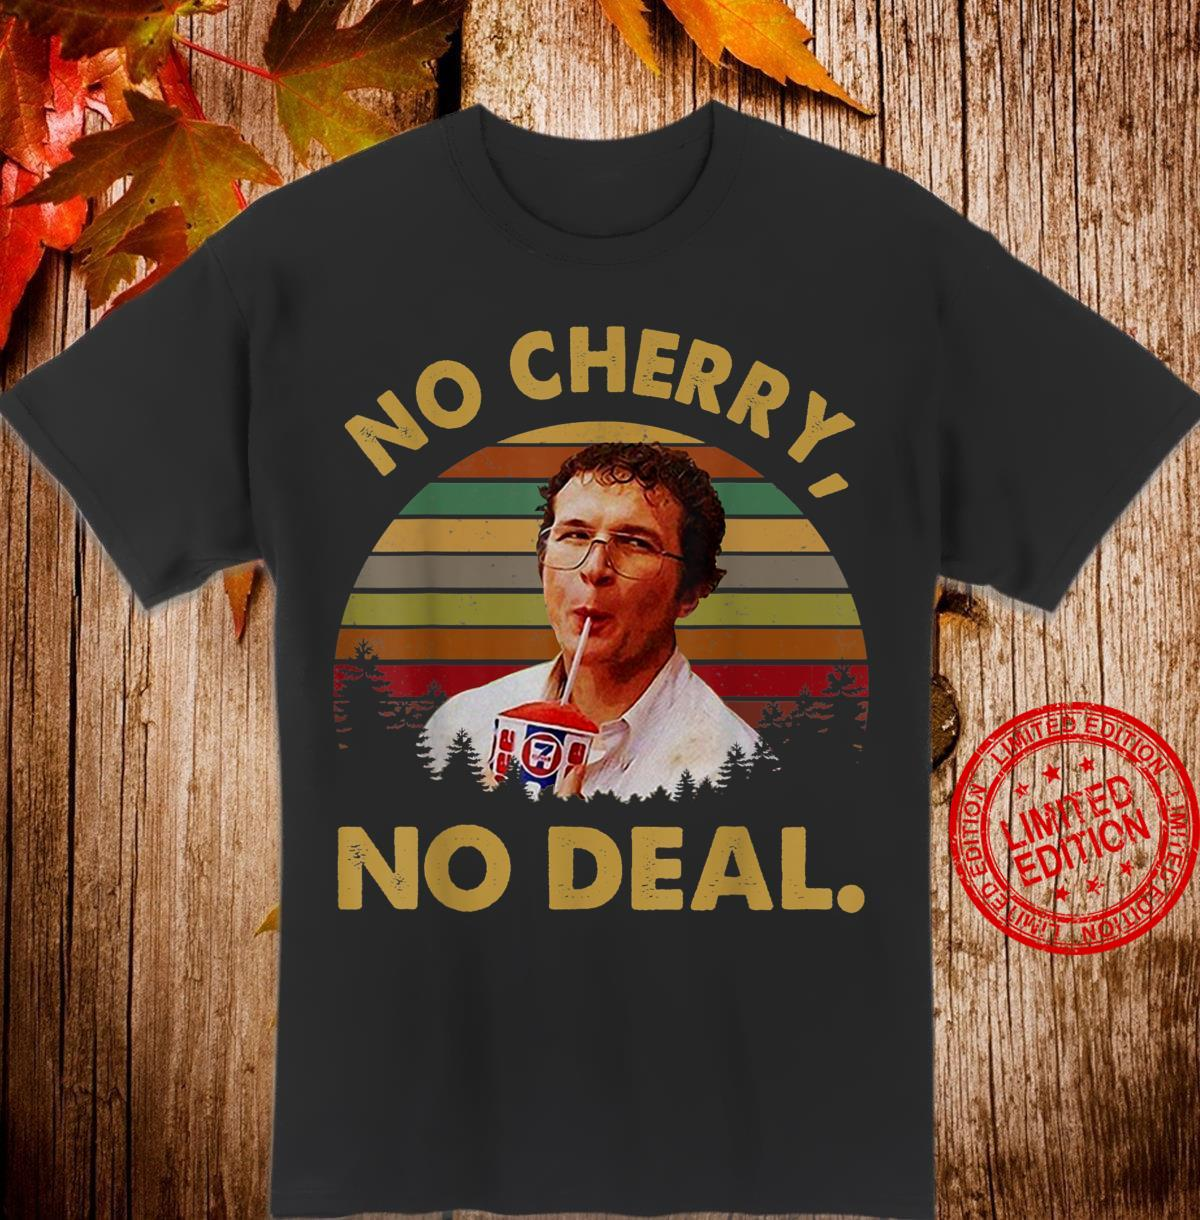 NoCherry, NoDeal Shirt